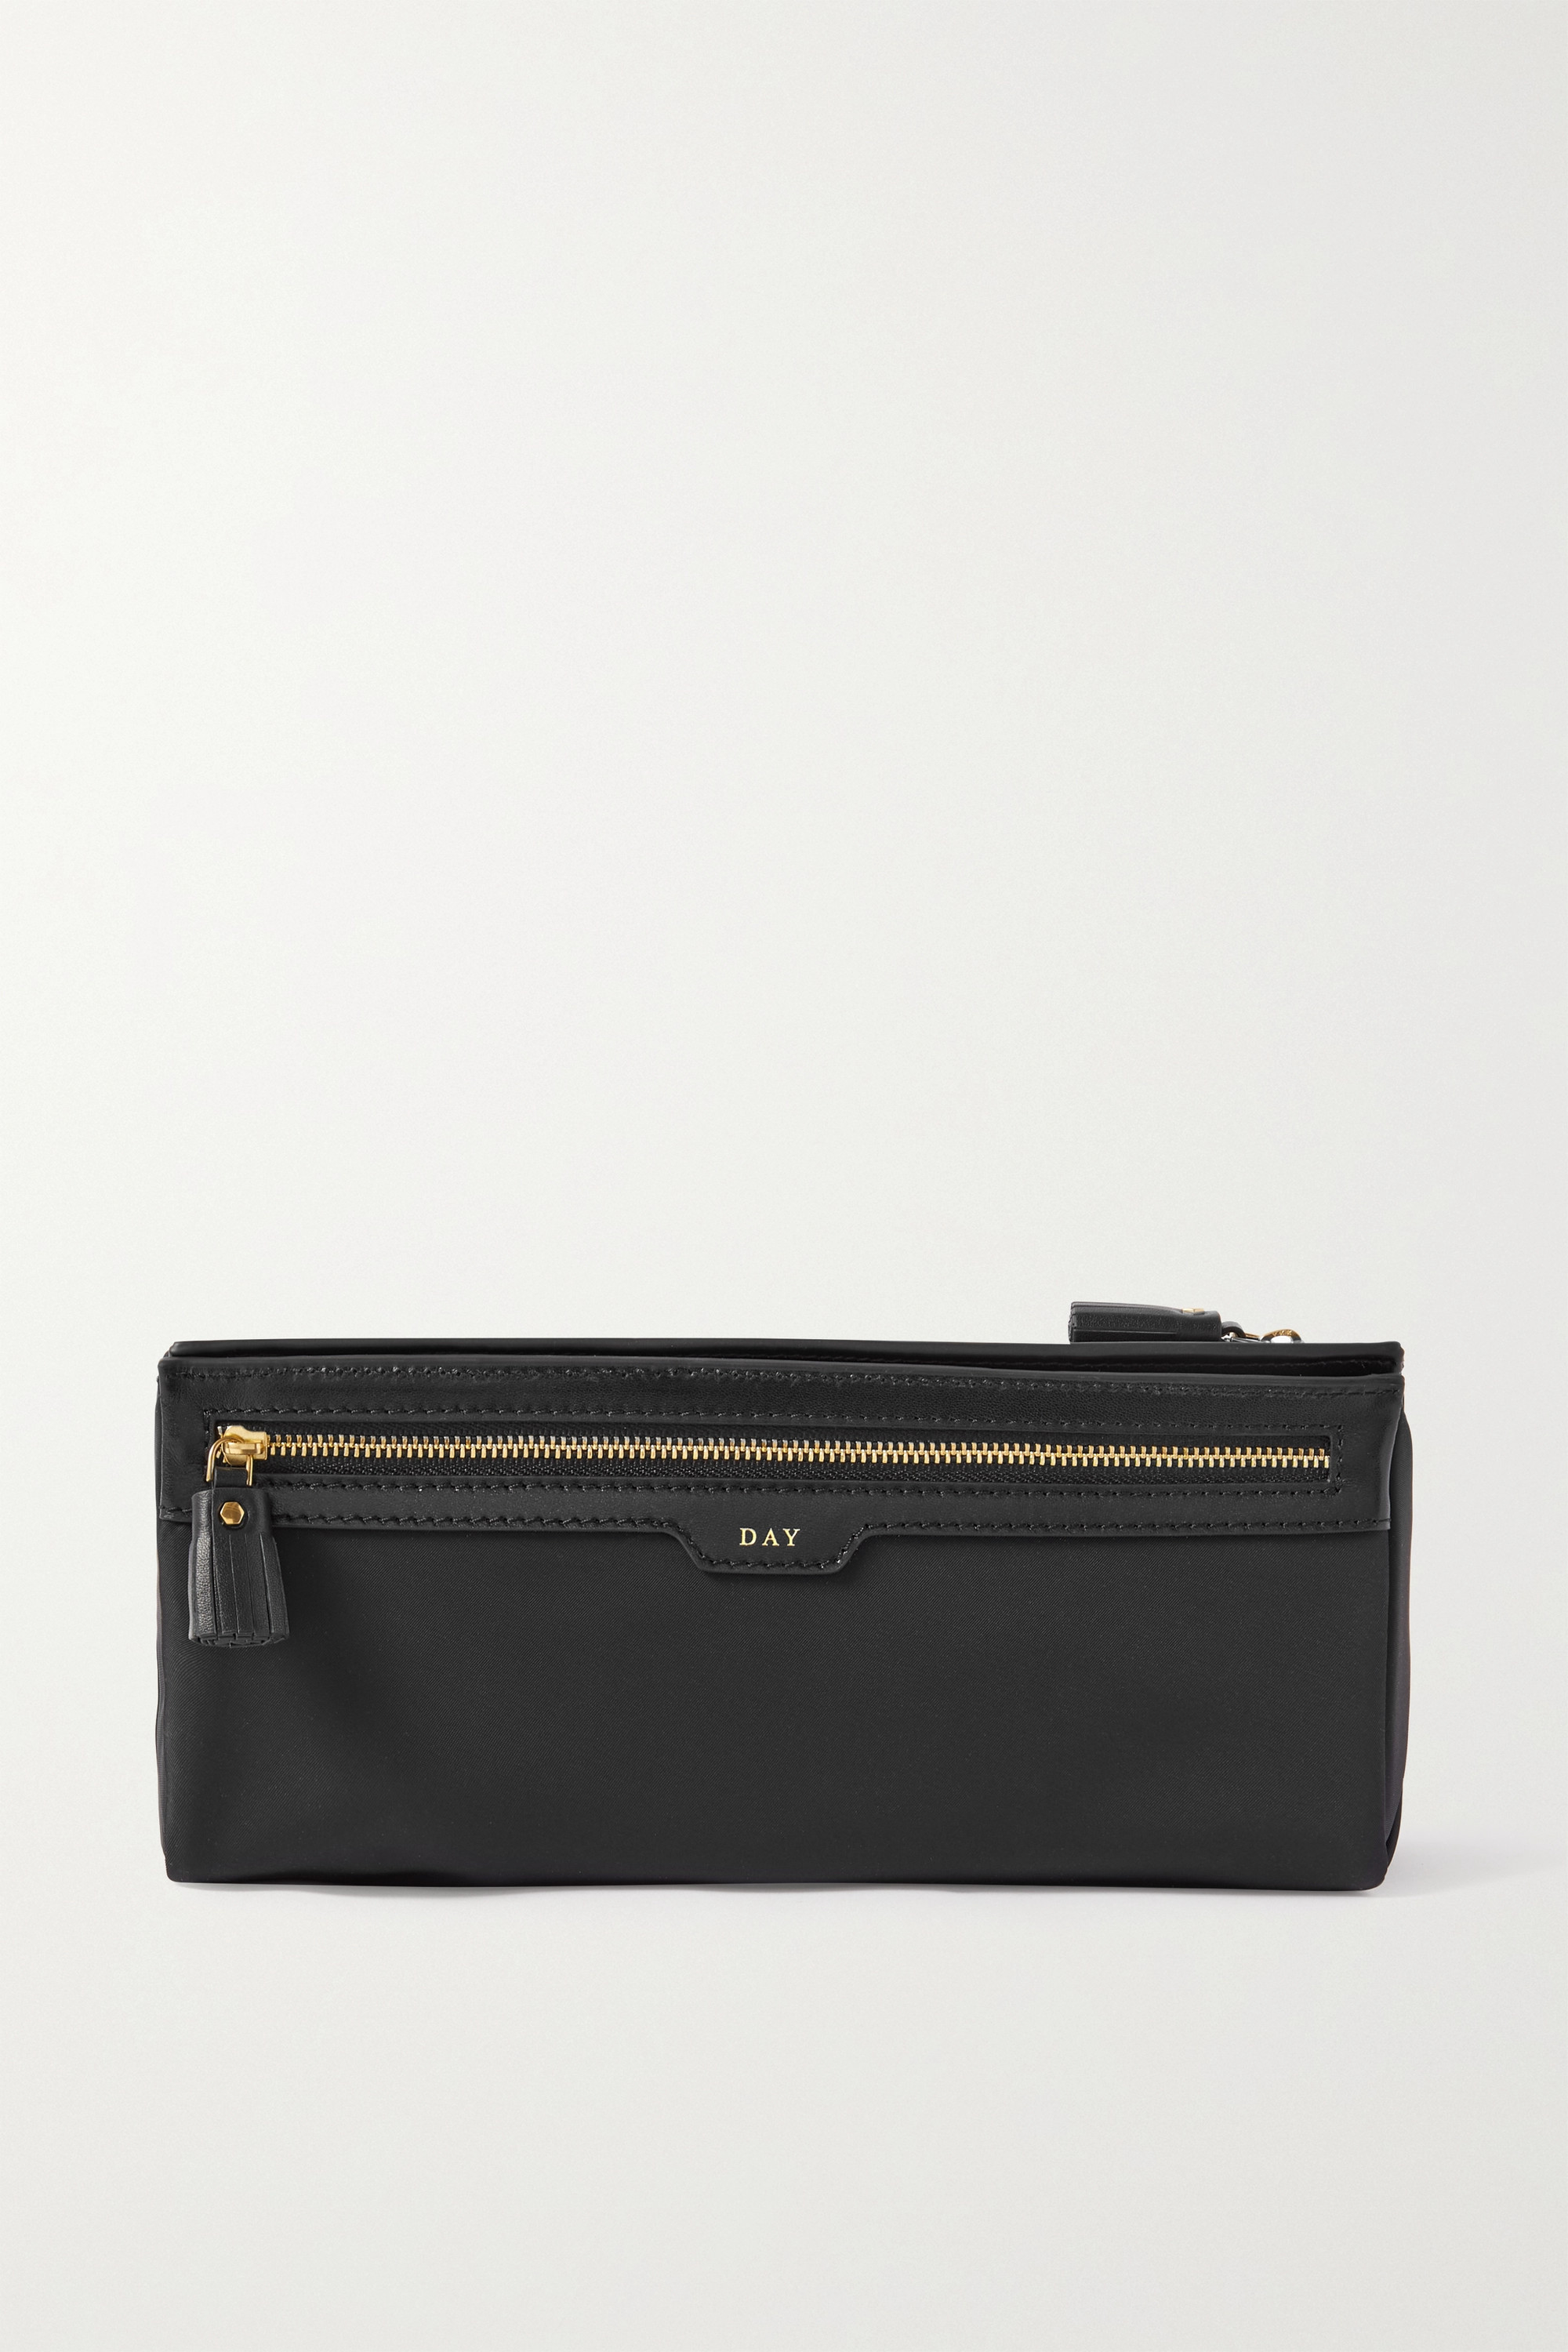 Anya Hindmarch + NET SUSTAIN Night and Day recycled shell, PVC and leather cosmetics case